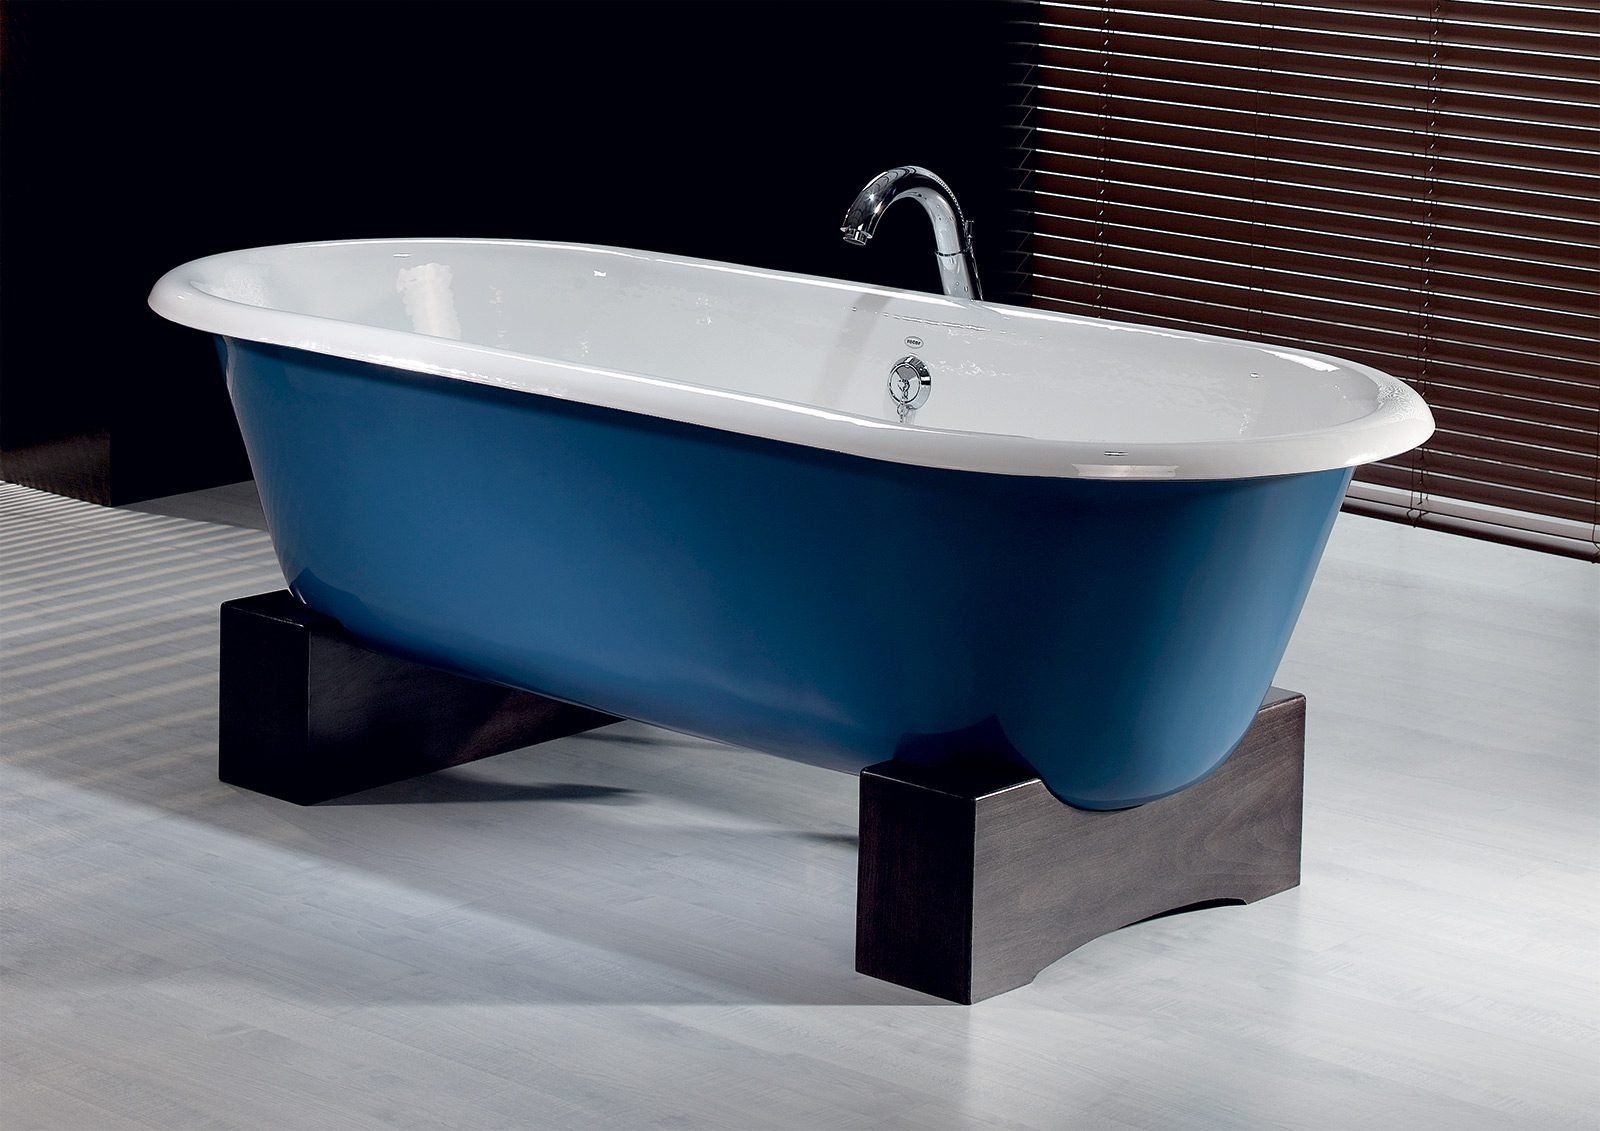 REGAL Cast Iron Bath with Wooden Base - Cheviot Products